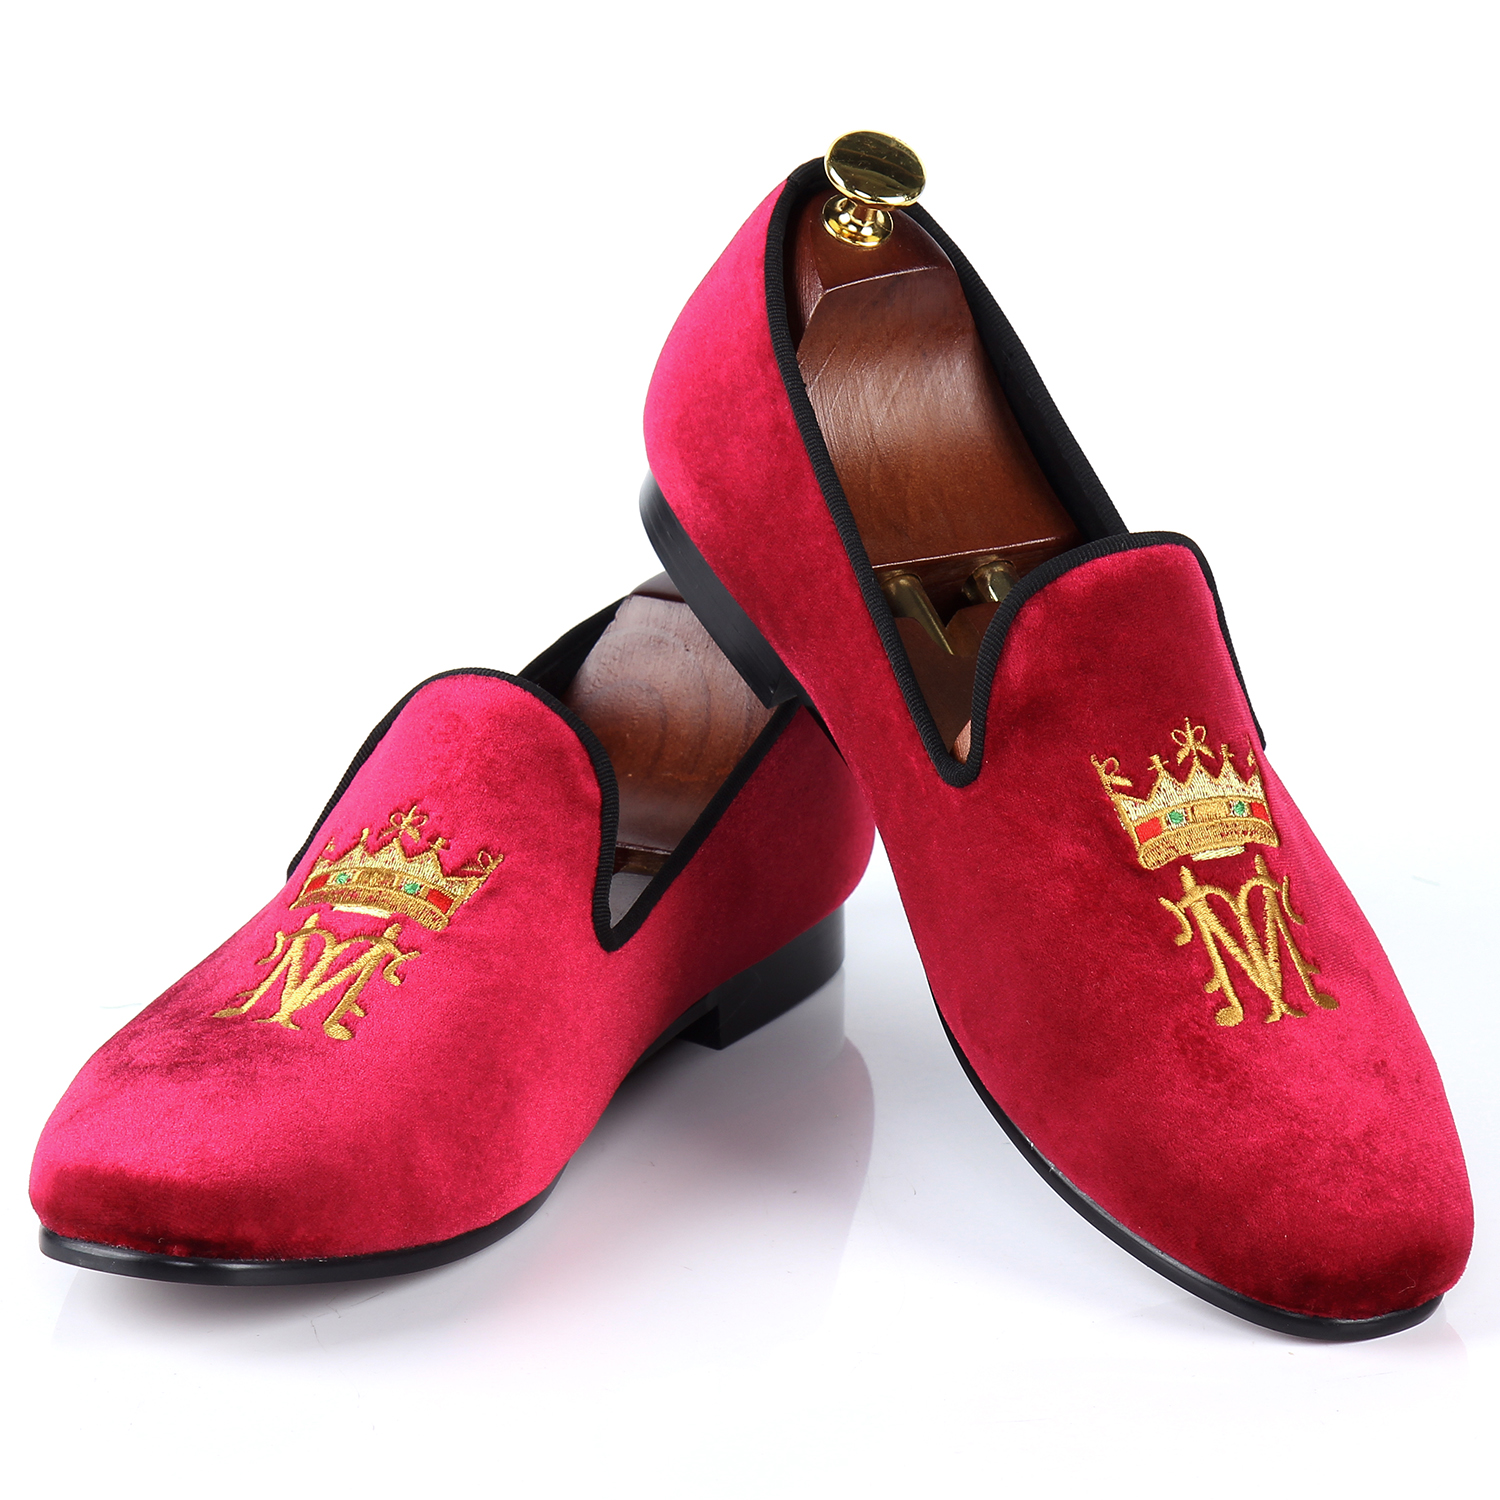 Harpelunde 2017 New Arrival Men Shoes Casual Burgundy Velvet Loafers Embroidery Smoking Slippers Size 7-13 new black embroidery loafers men luxury velvet smoking slippers british mens casual boat shoes slip on flat shoes espadrilles